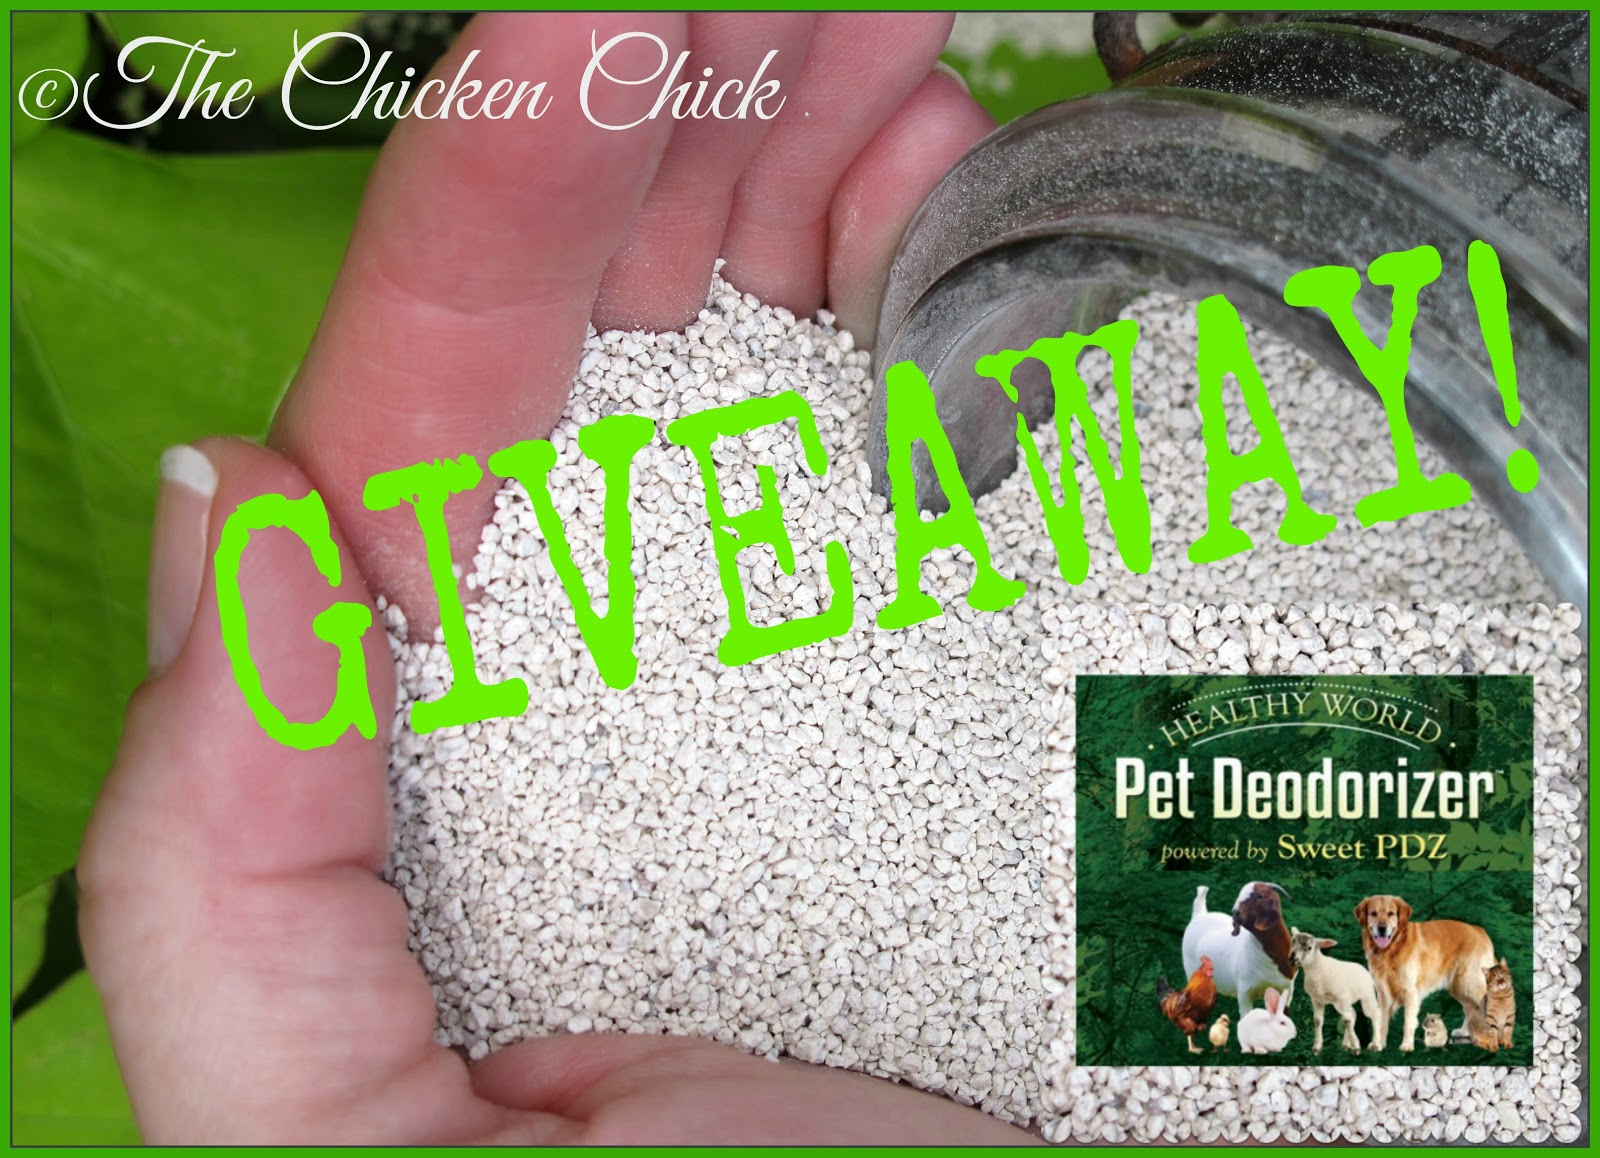 Sweet PDZ Healthy World Pet Deodorizer Giveaway at The Chicken Chick®